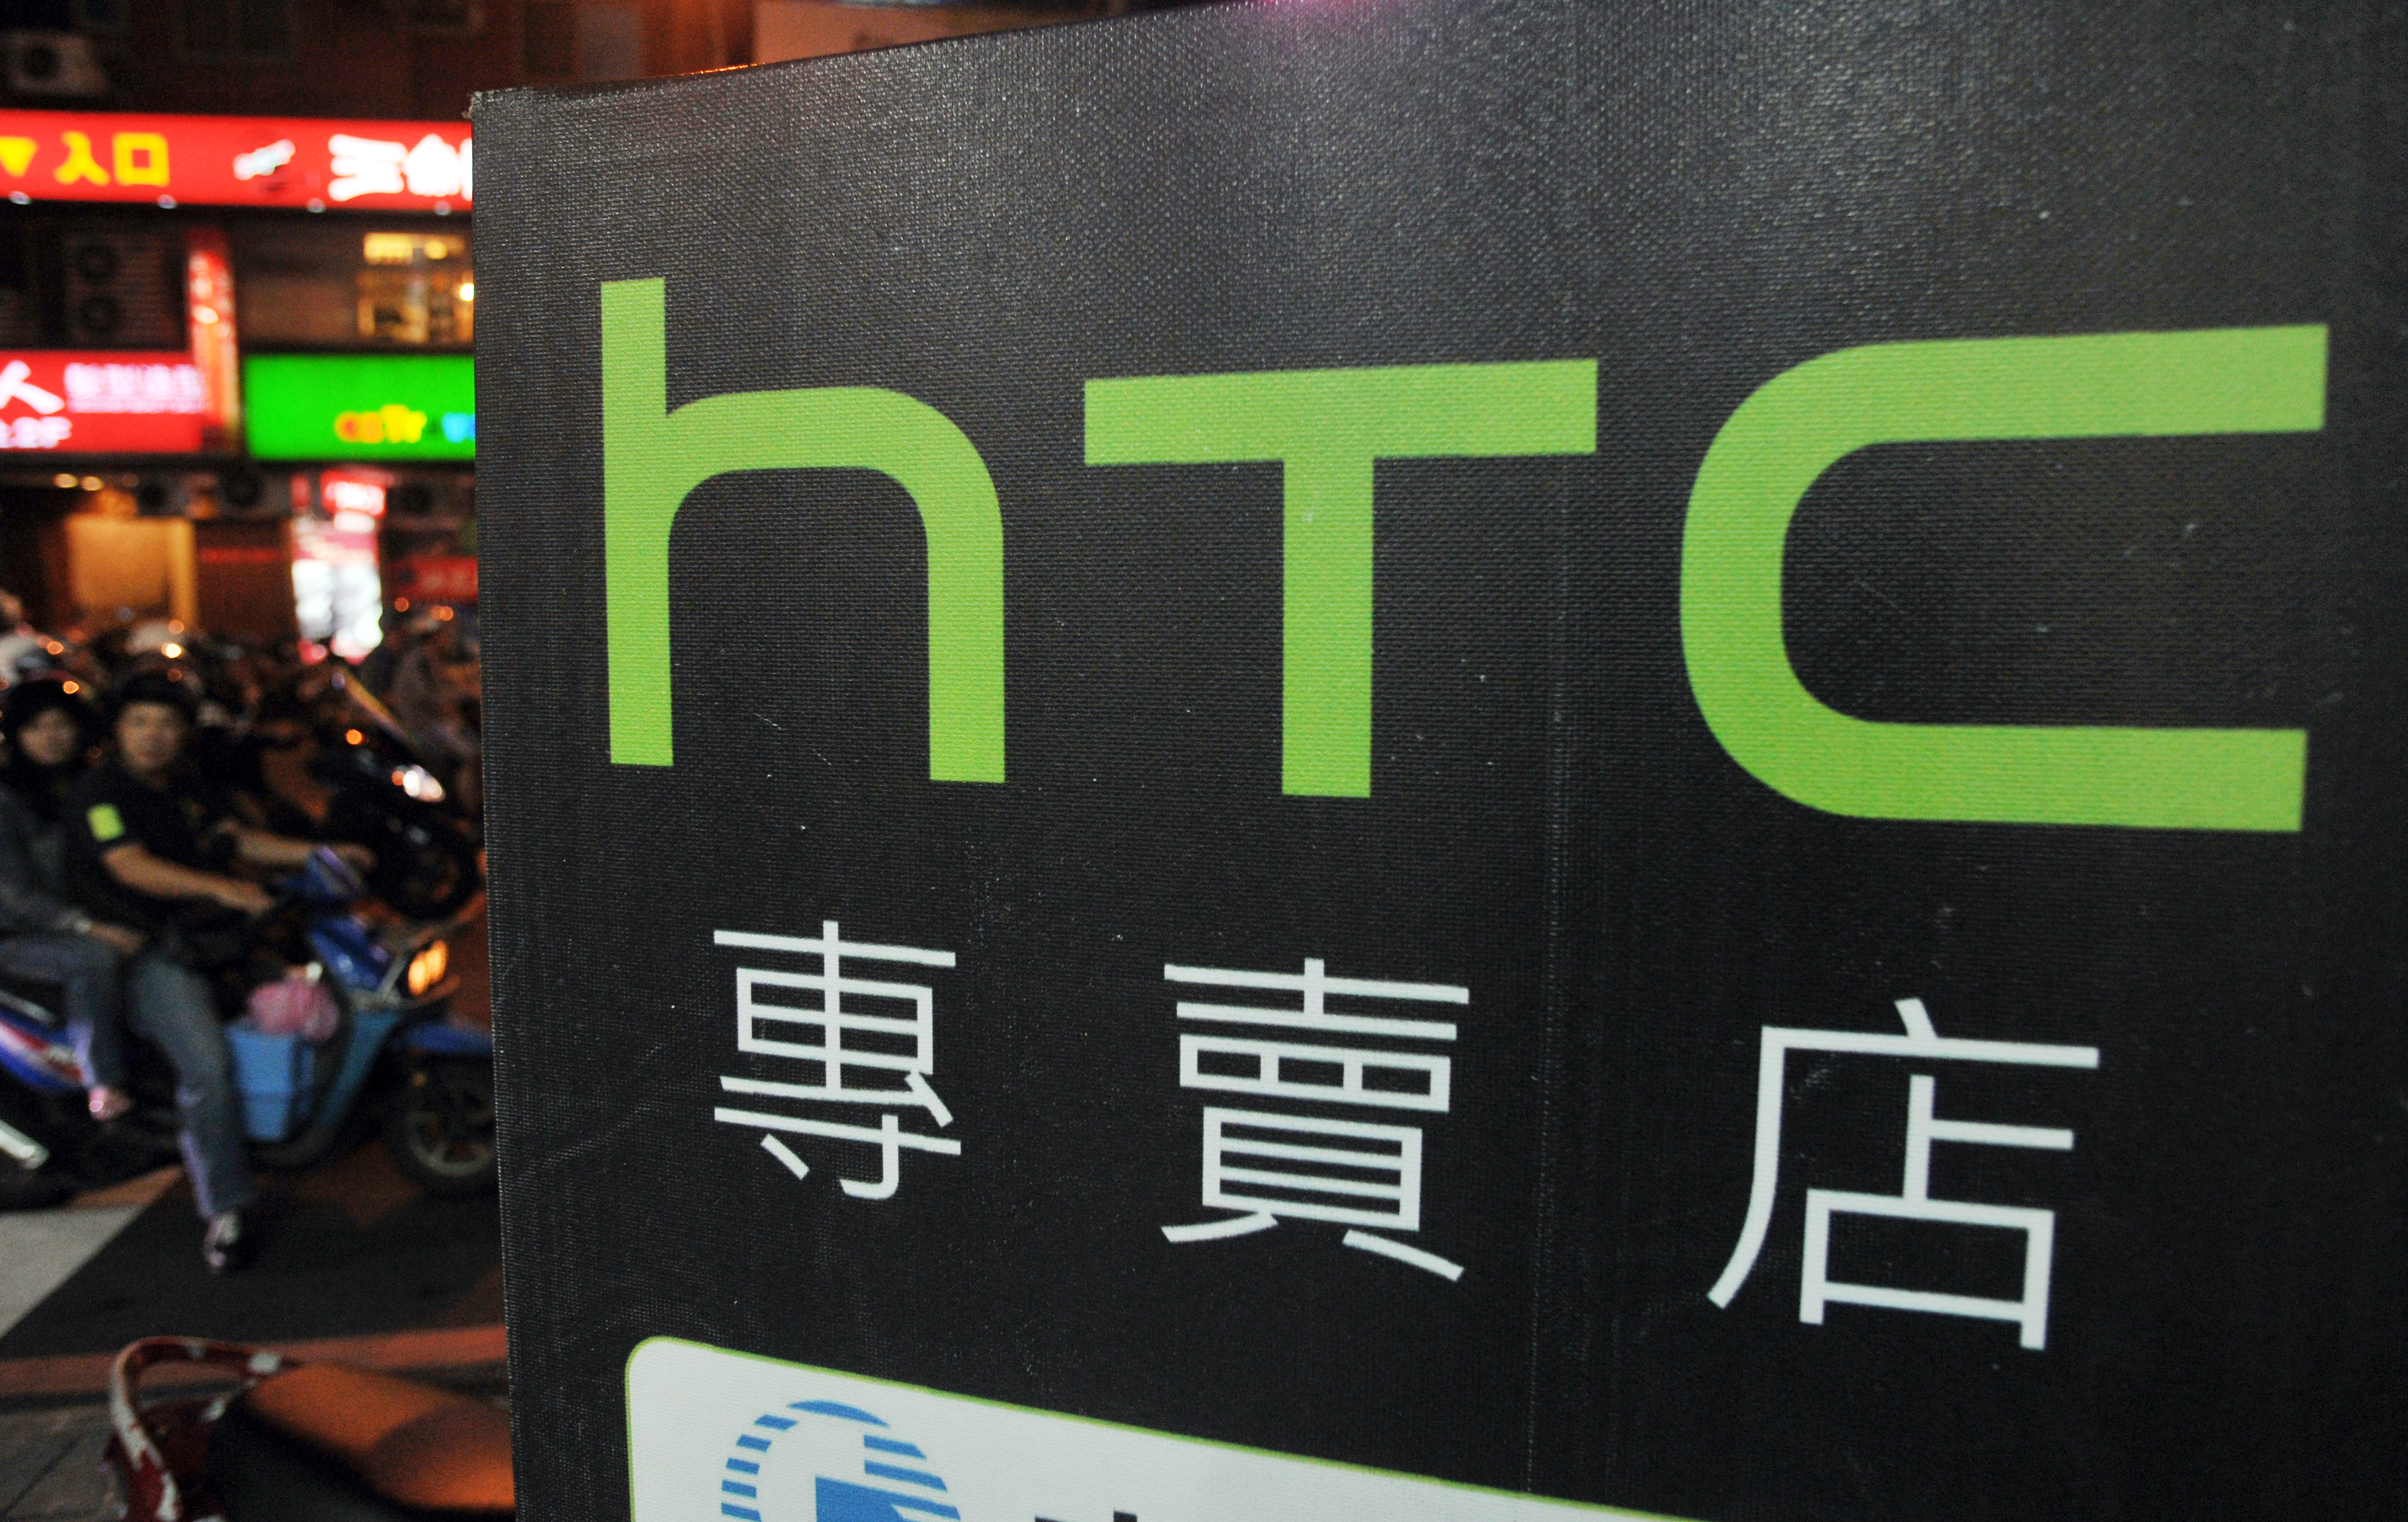 Motorists drive past a HTC store in the Younghe district of New Taipei City on October 8, 2012. Taiwan's leading smartphone maker HTC said on October 8 its net profit in the three months to September tumbled 79.1 percent year on year as it faces stiffer competition from rivals like Apple and Samsung. AFP PHOTO / Mandy CHENG        (Photo credit should read Mandy Cheng/AFP/GettyImages)